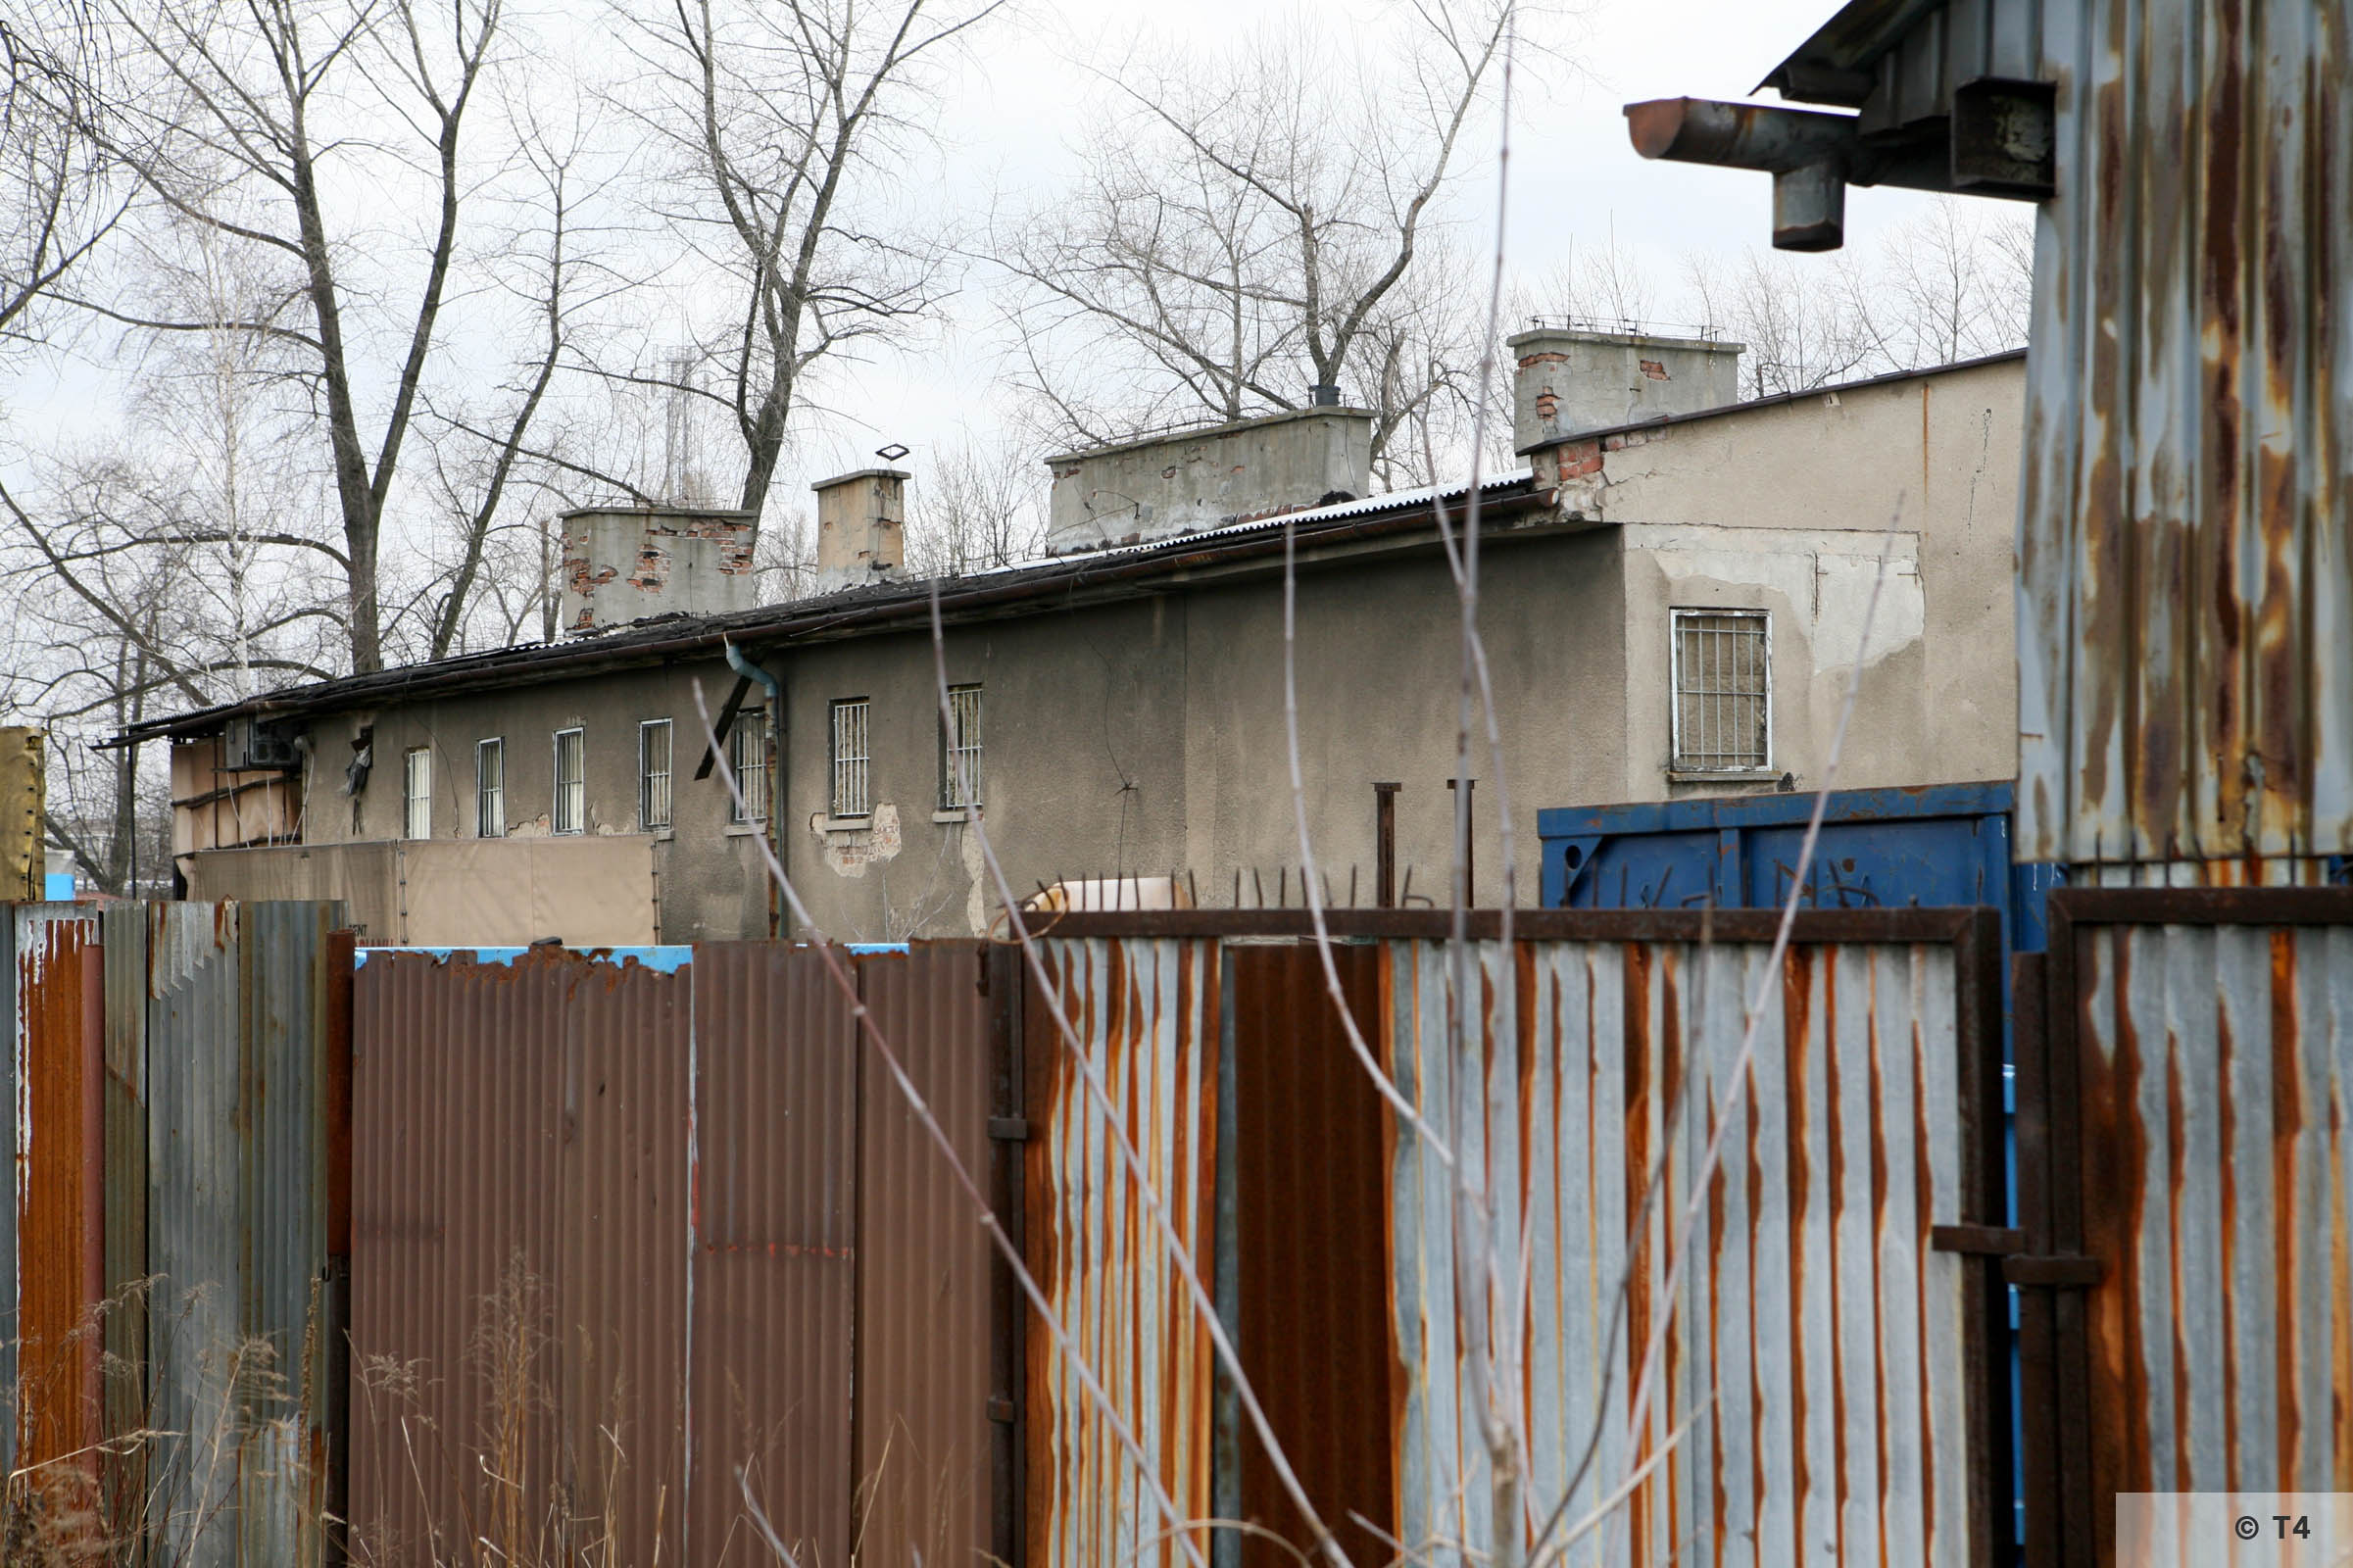 Building of the Wascherei and the cells for prisoners. 2007 T4 6215